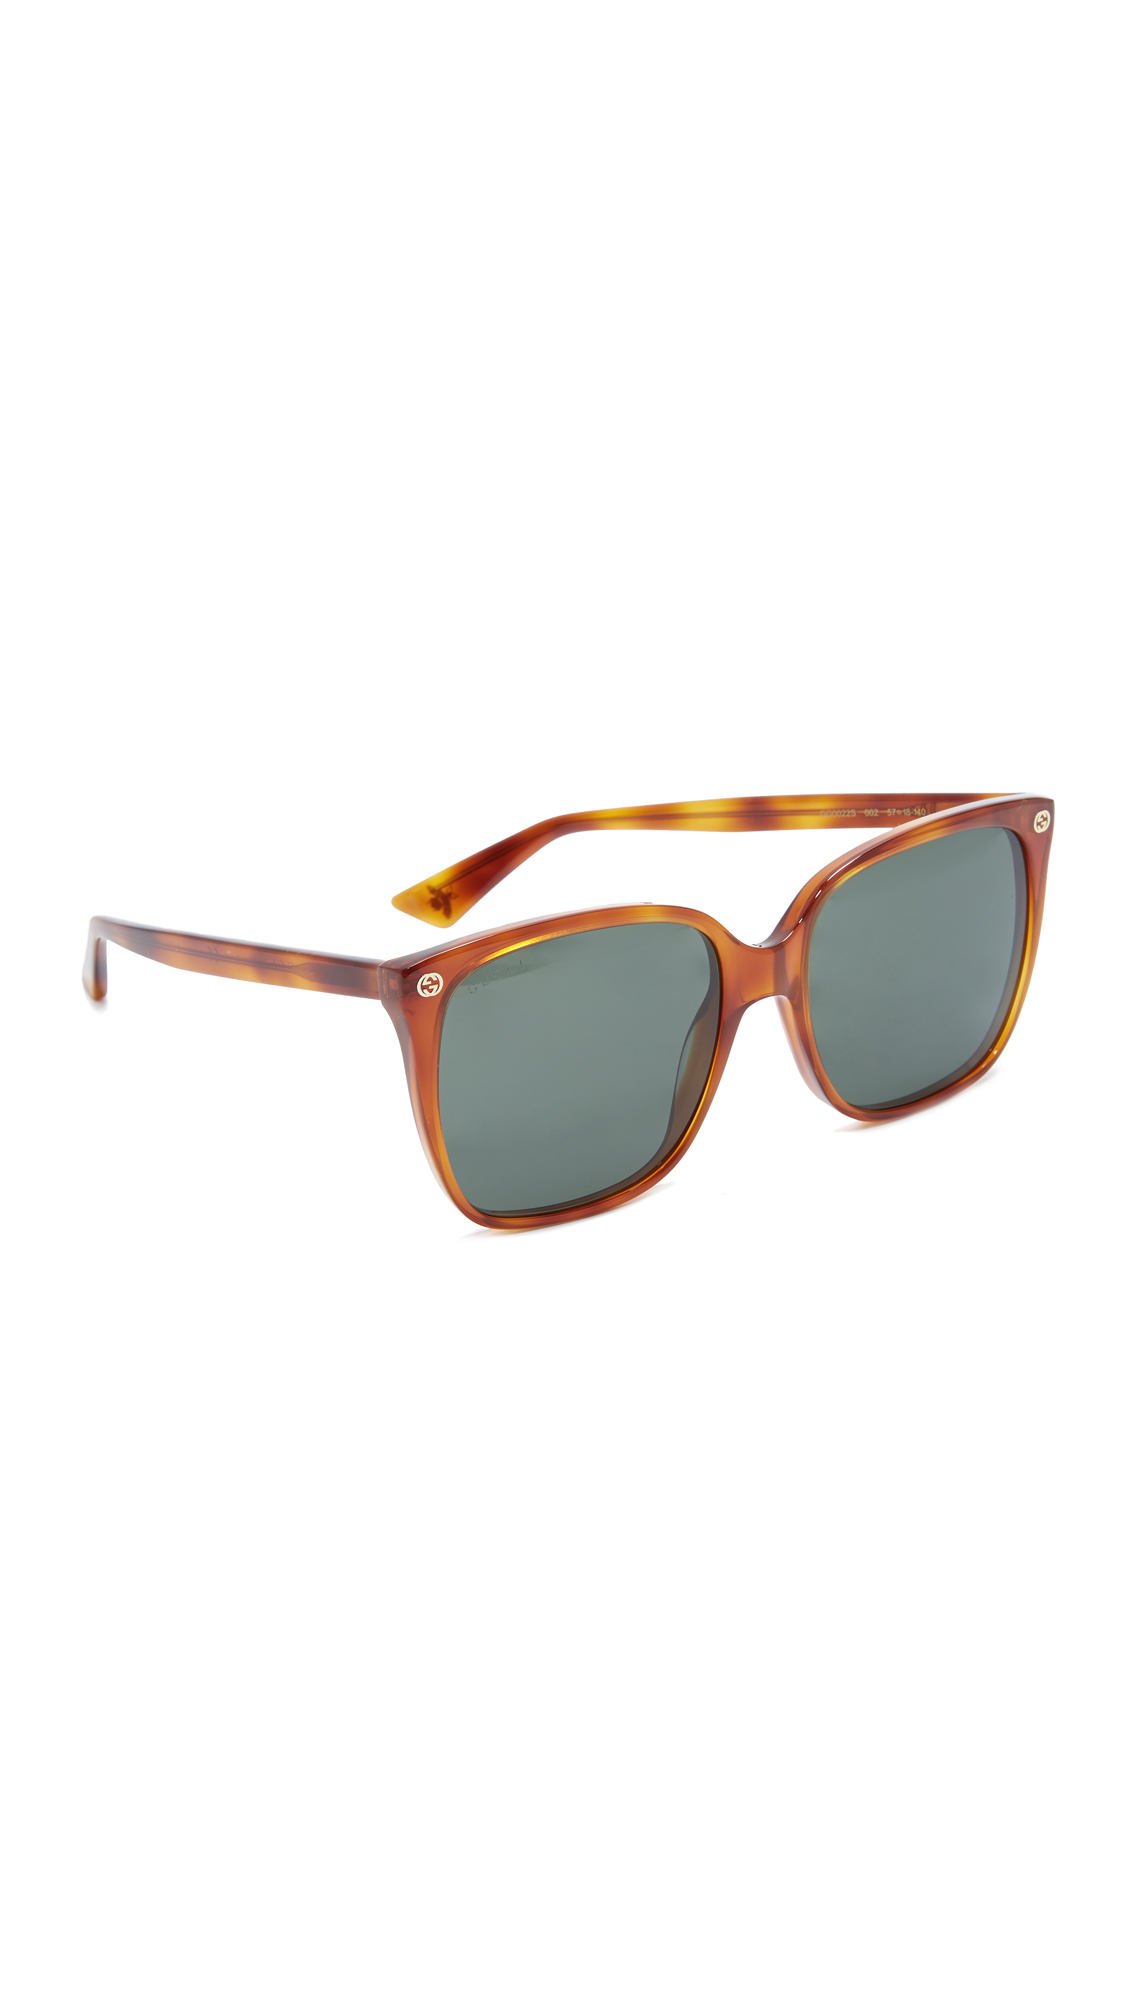 Gucci Lightness Square Sunglasses - Blonde Havana/Green